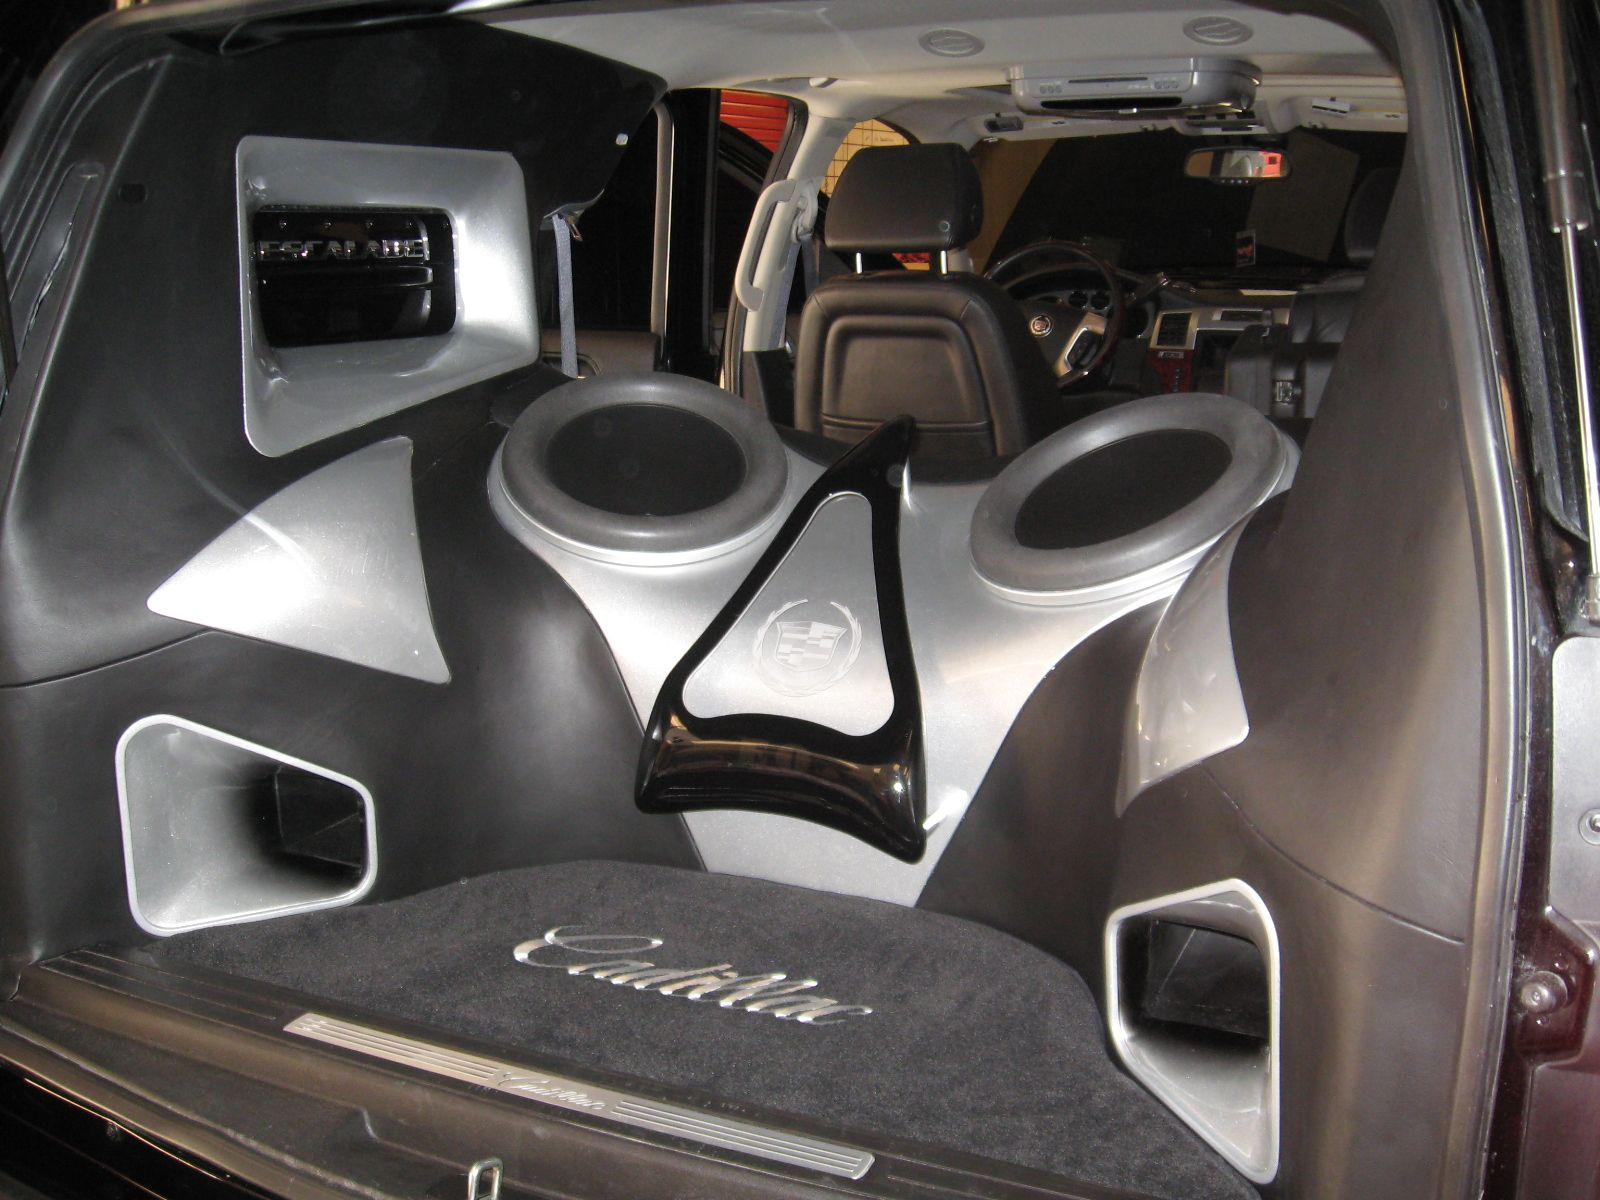 Trunk Car Audio Escalade Jl Audio Full Build Out In The Rear 13w7s 1000 1 Amps Car Audio Car Audio Subwoofers Car Audio Installation